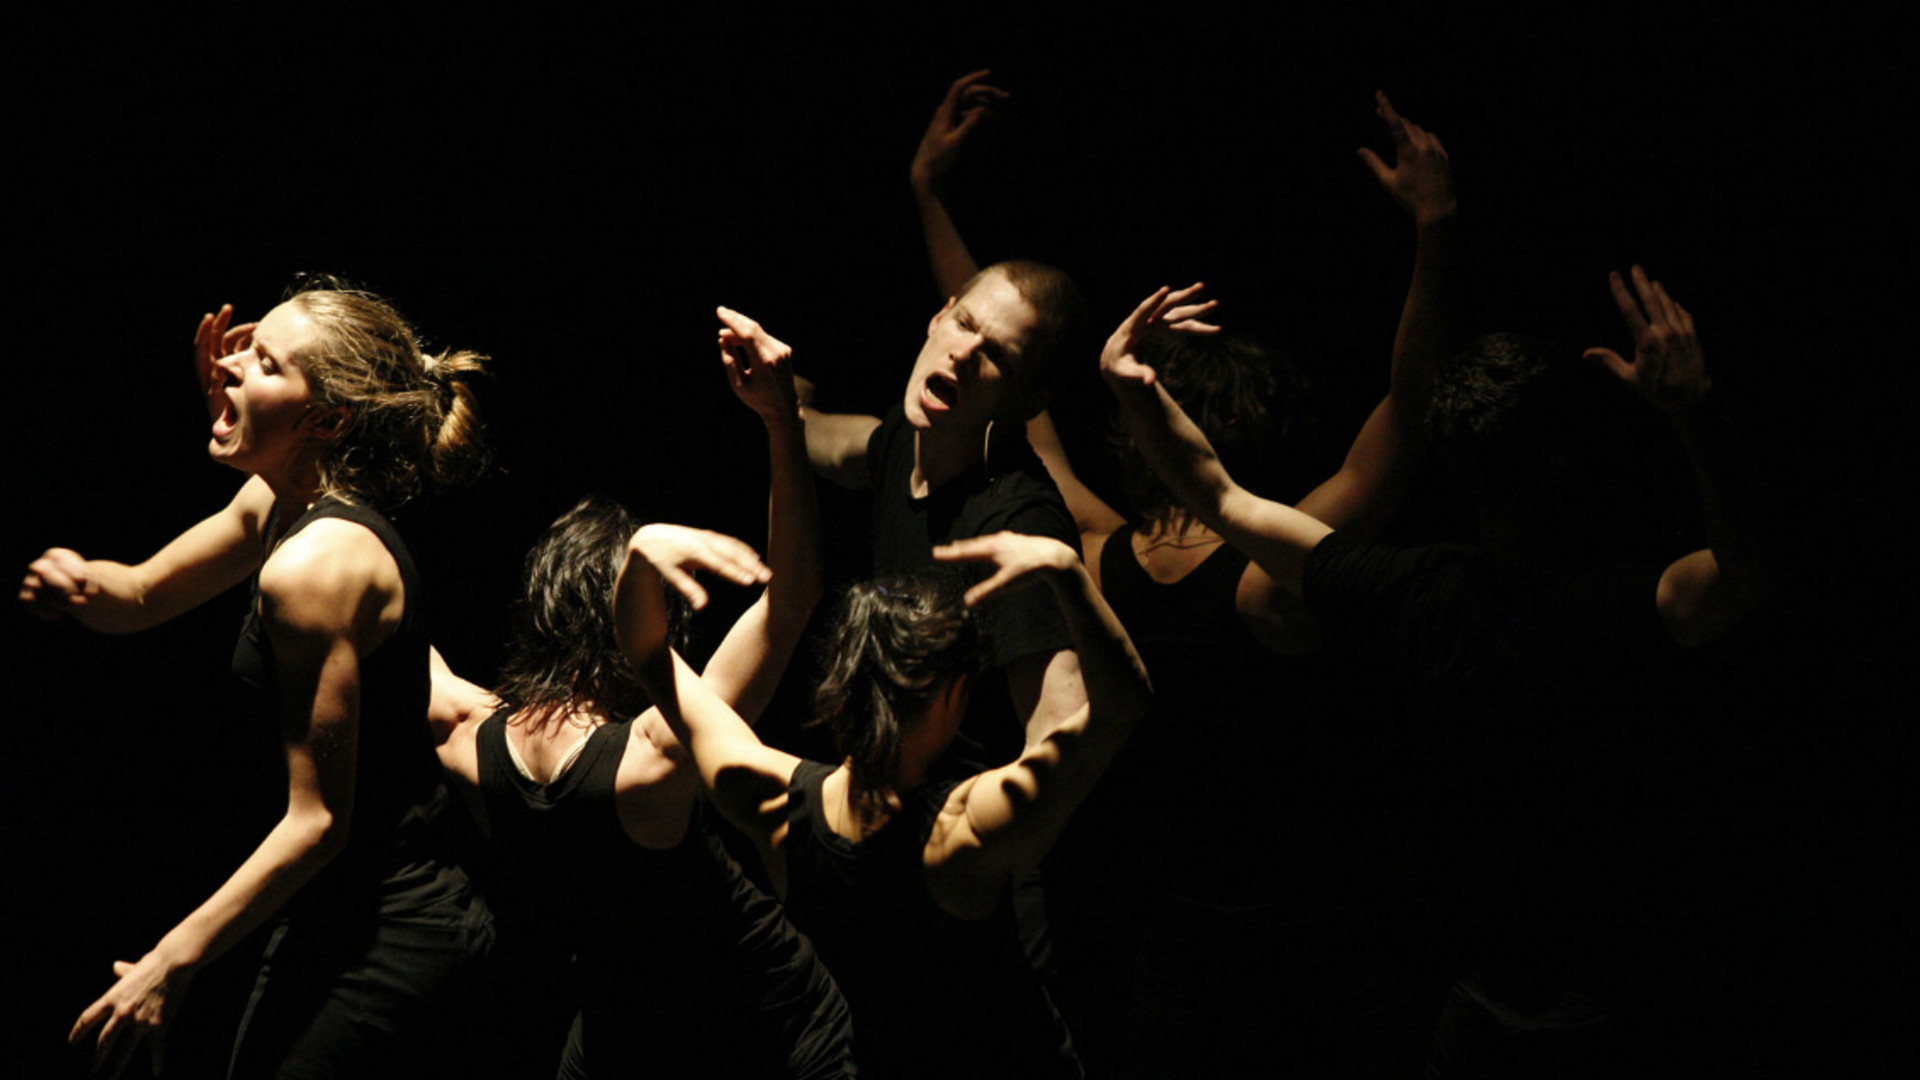 Dancers stand in a close group, facing different directions, with their mouths open wide.